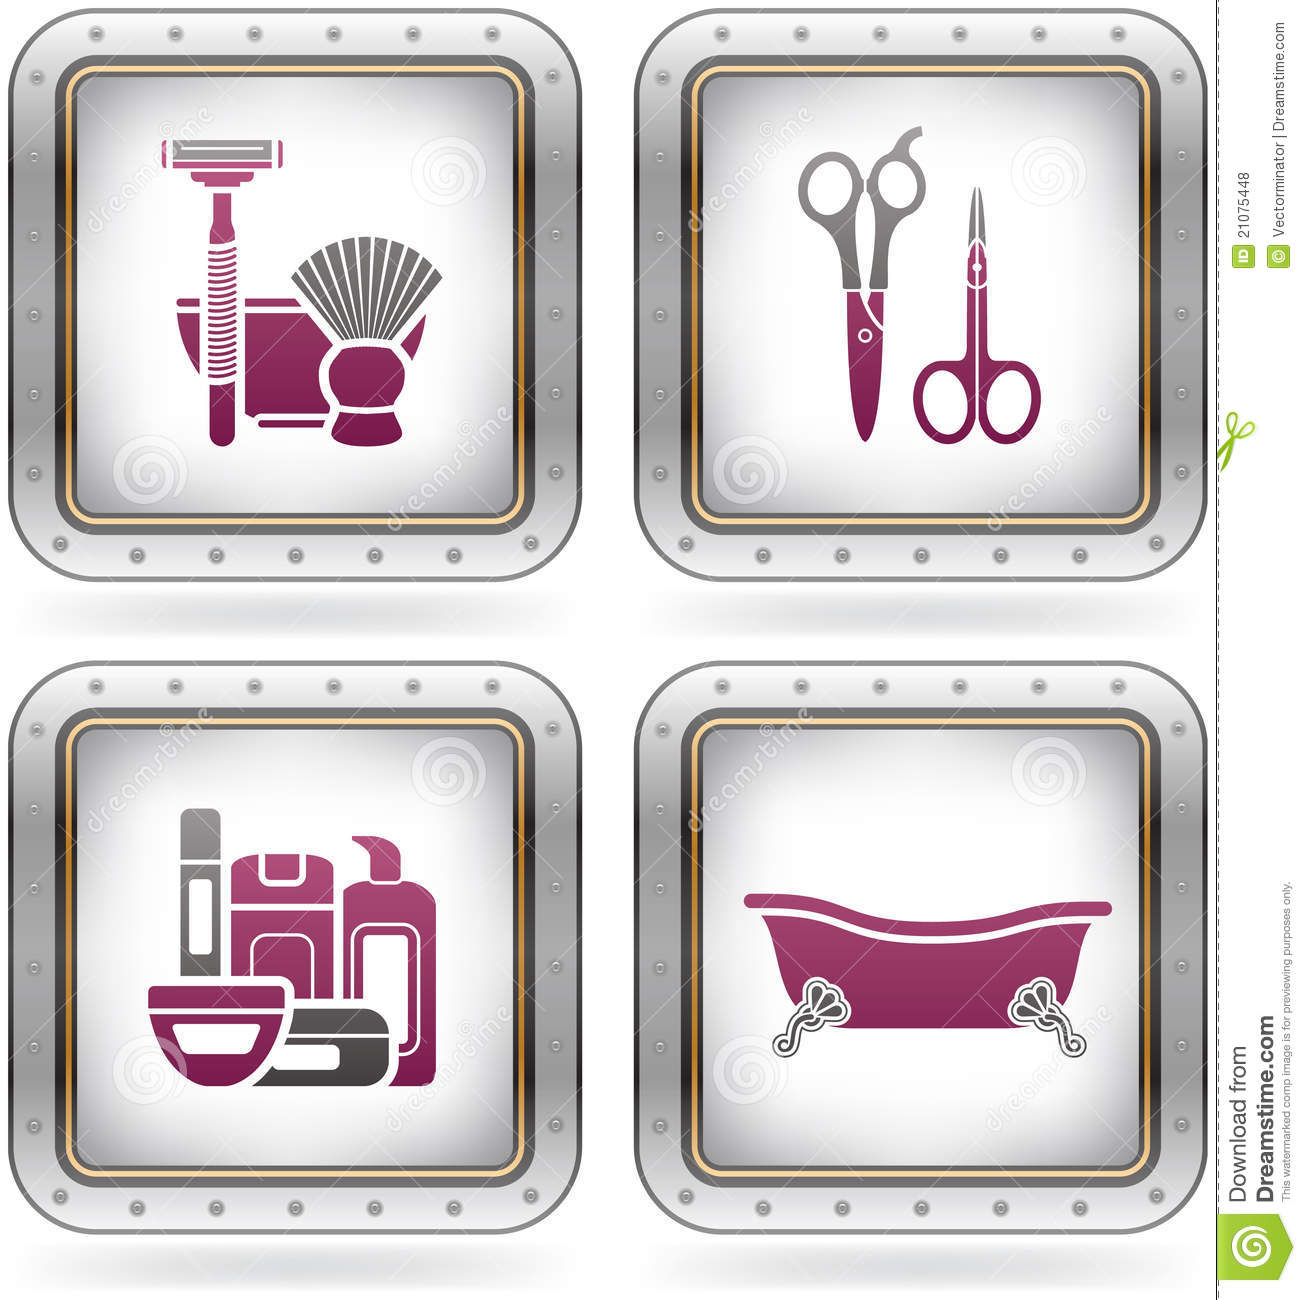 Bath utensils royalty free stock photos image 21075448 for Bathroom utensils